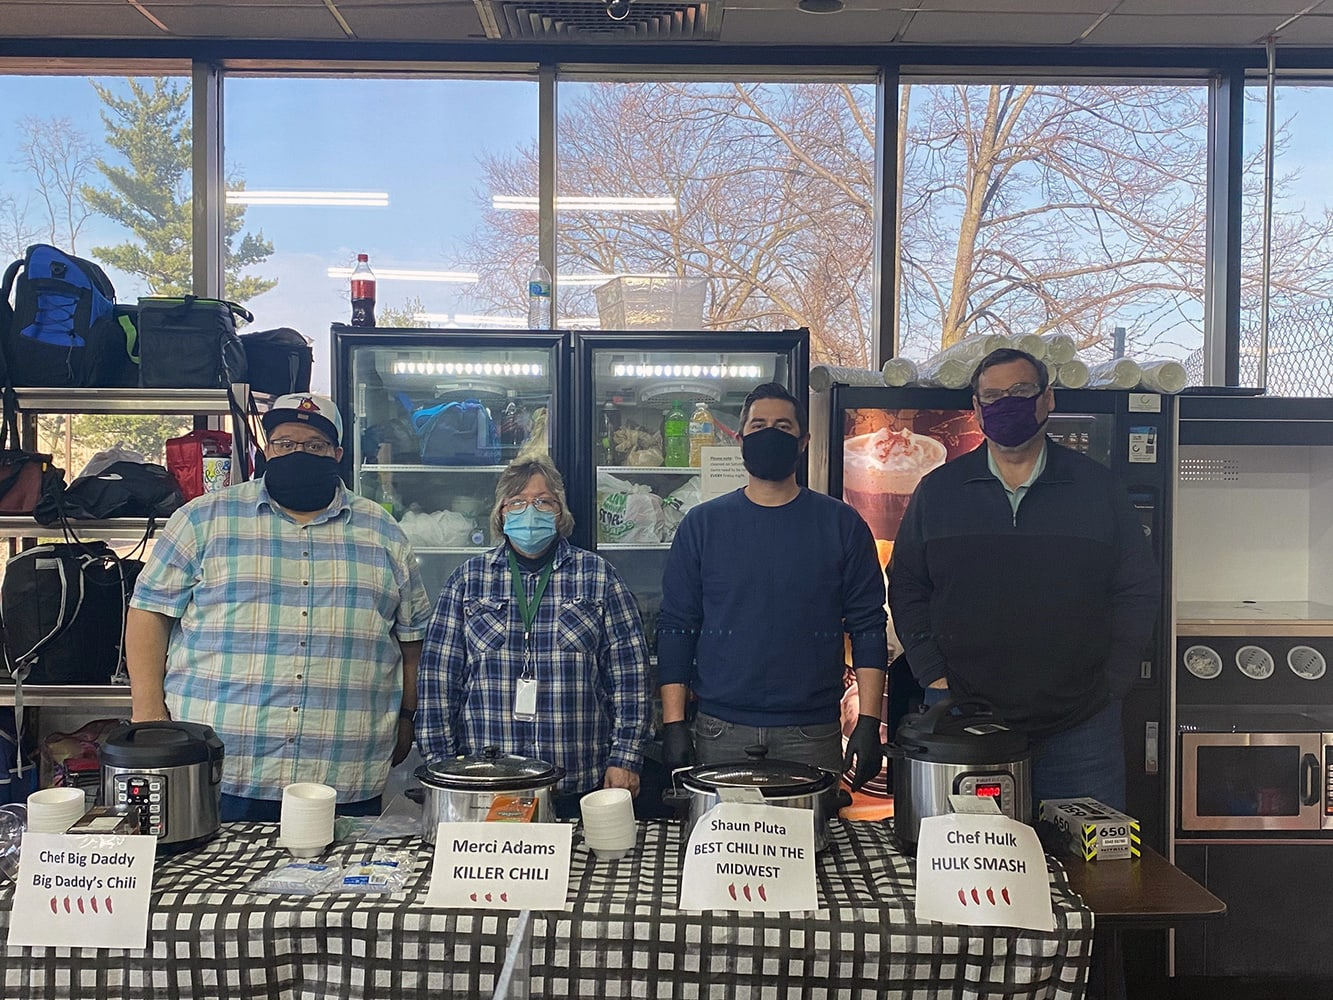 Bristol employees compete in chili cook off